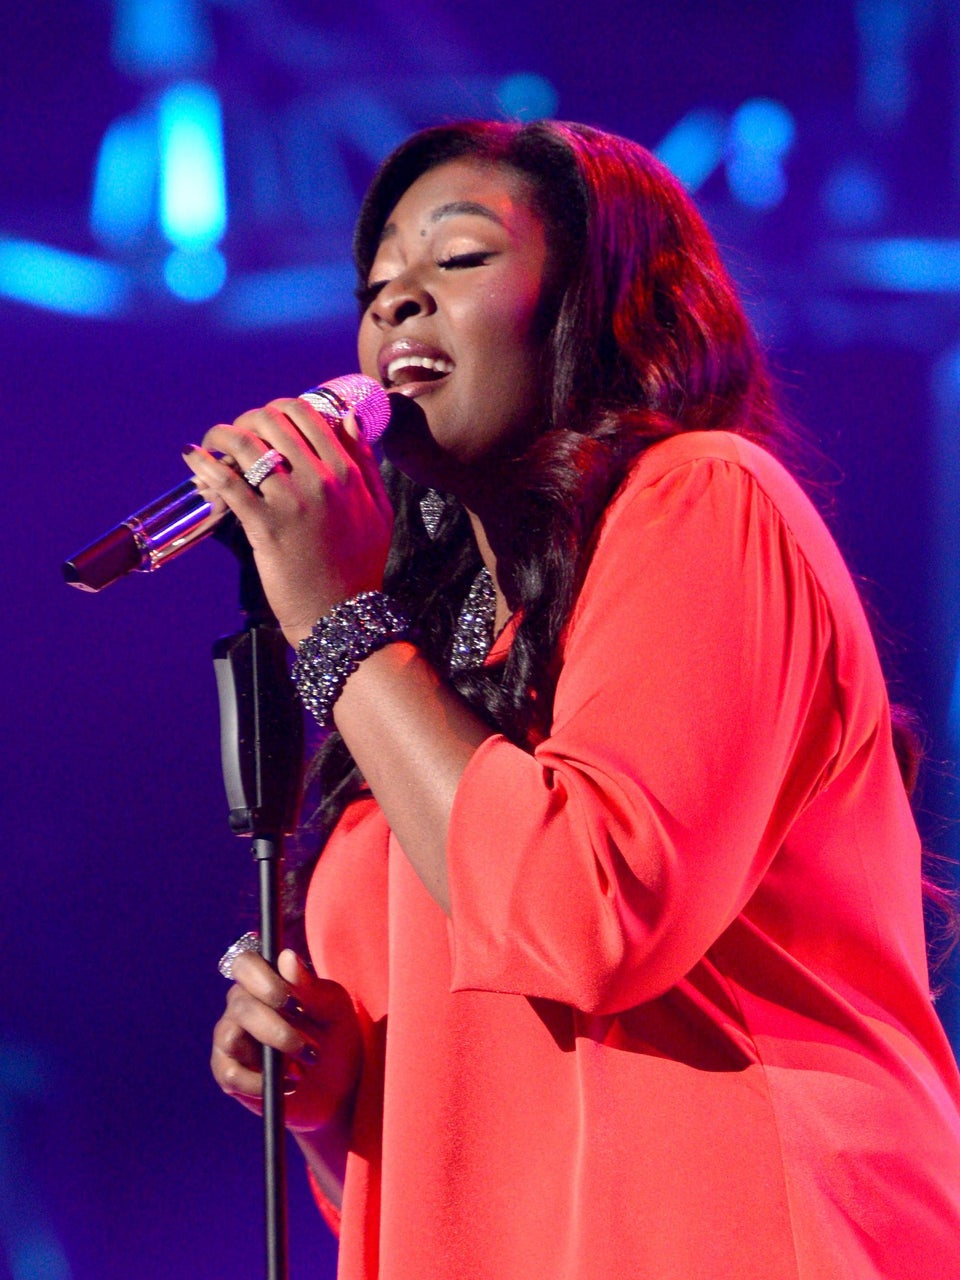 'American Idol' Poll: What's Your Favorite Candice Glover Performance?